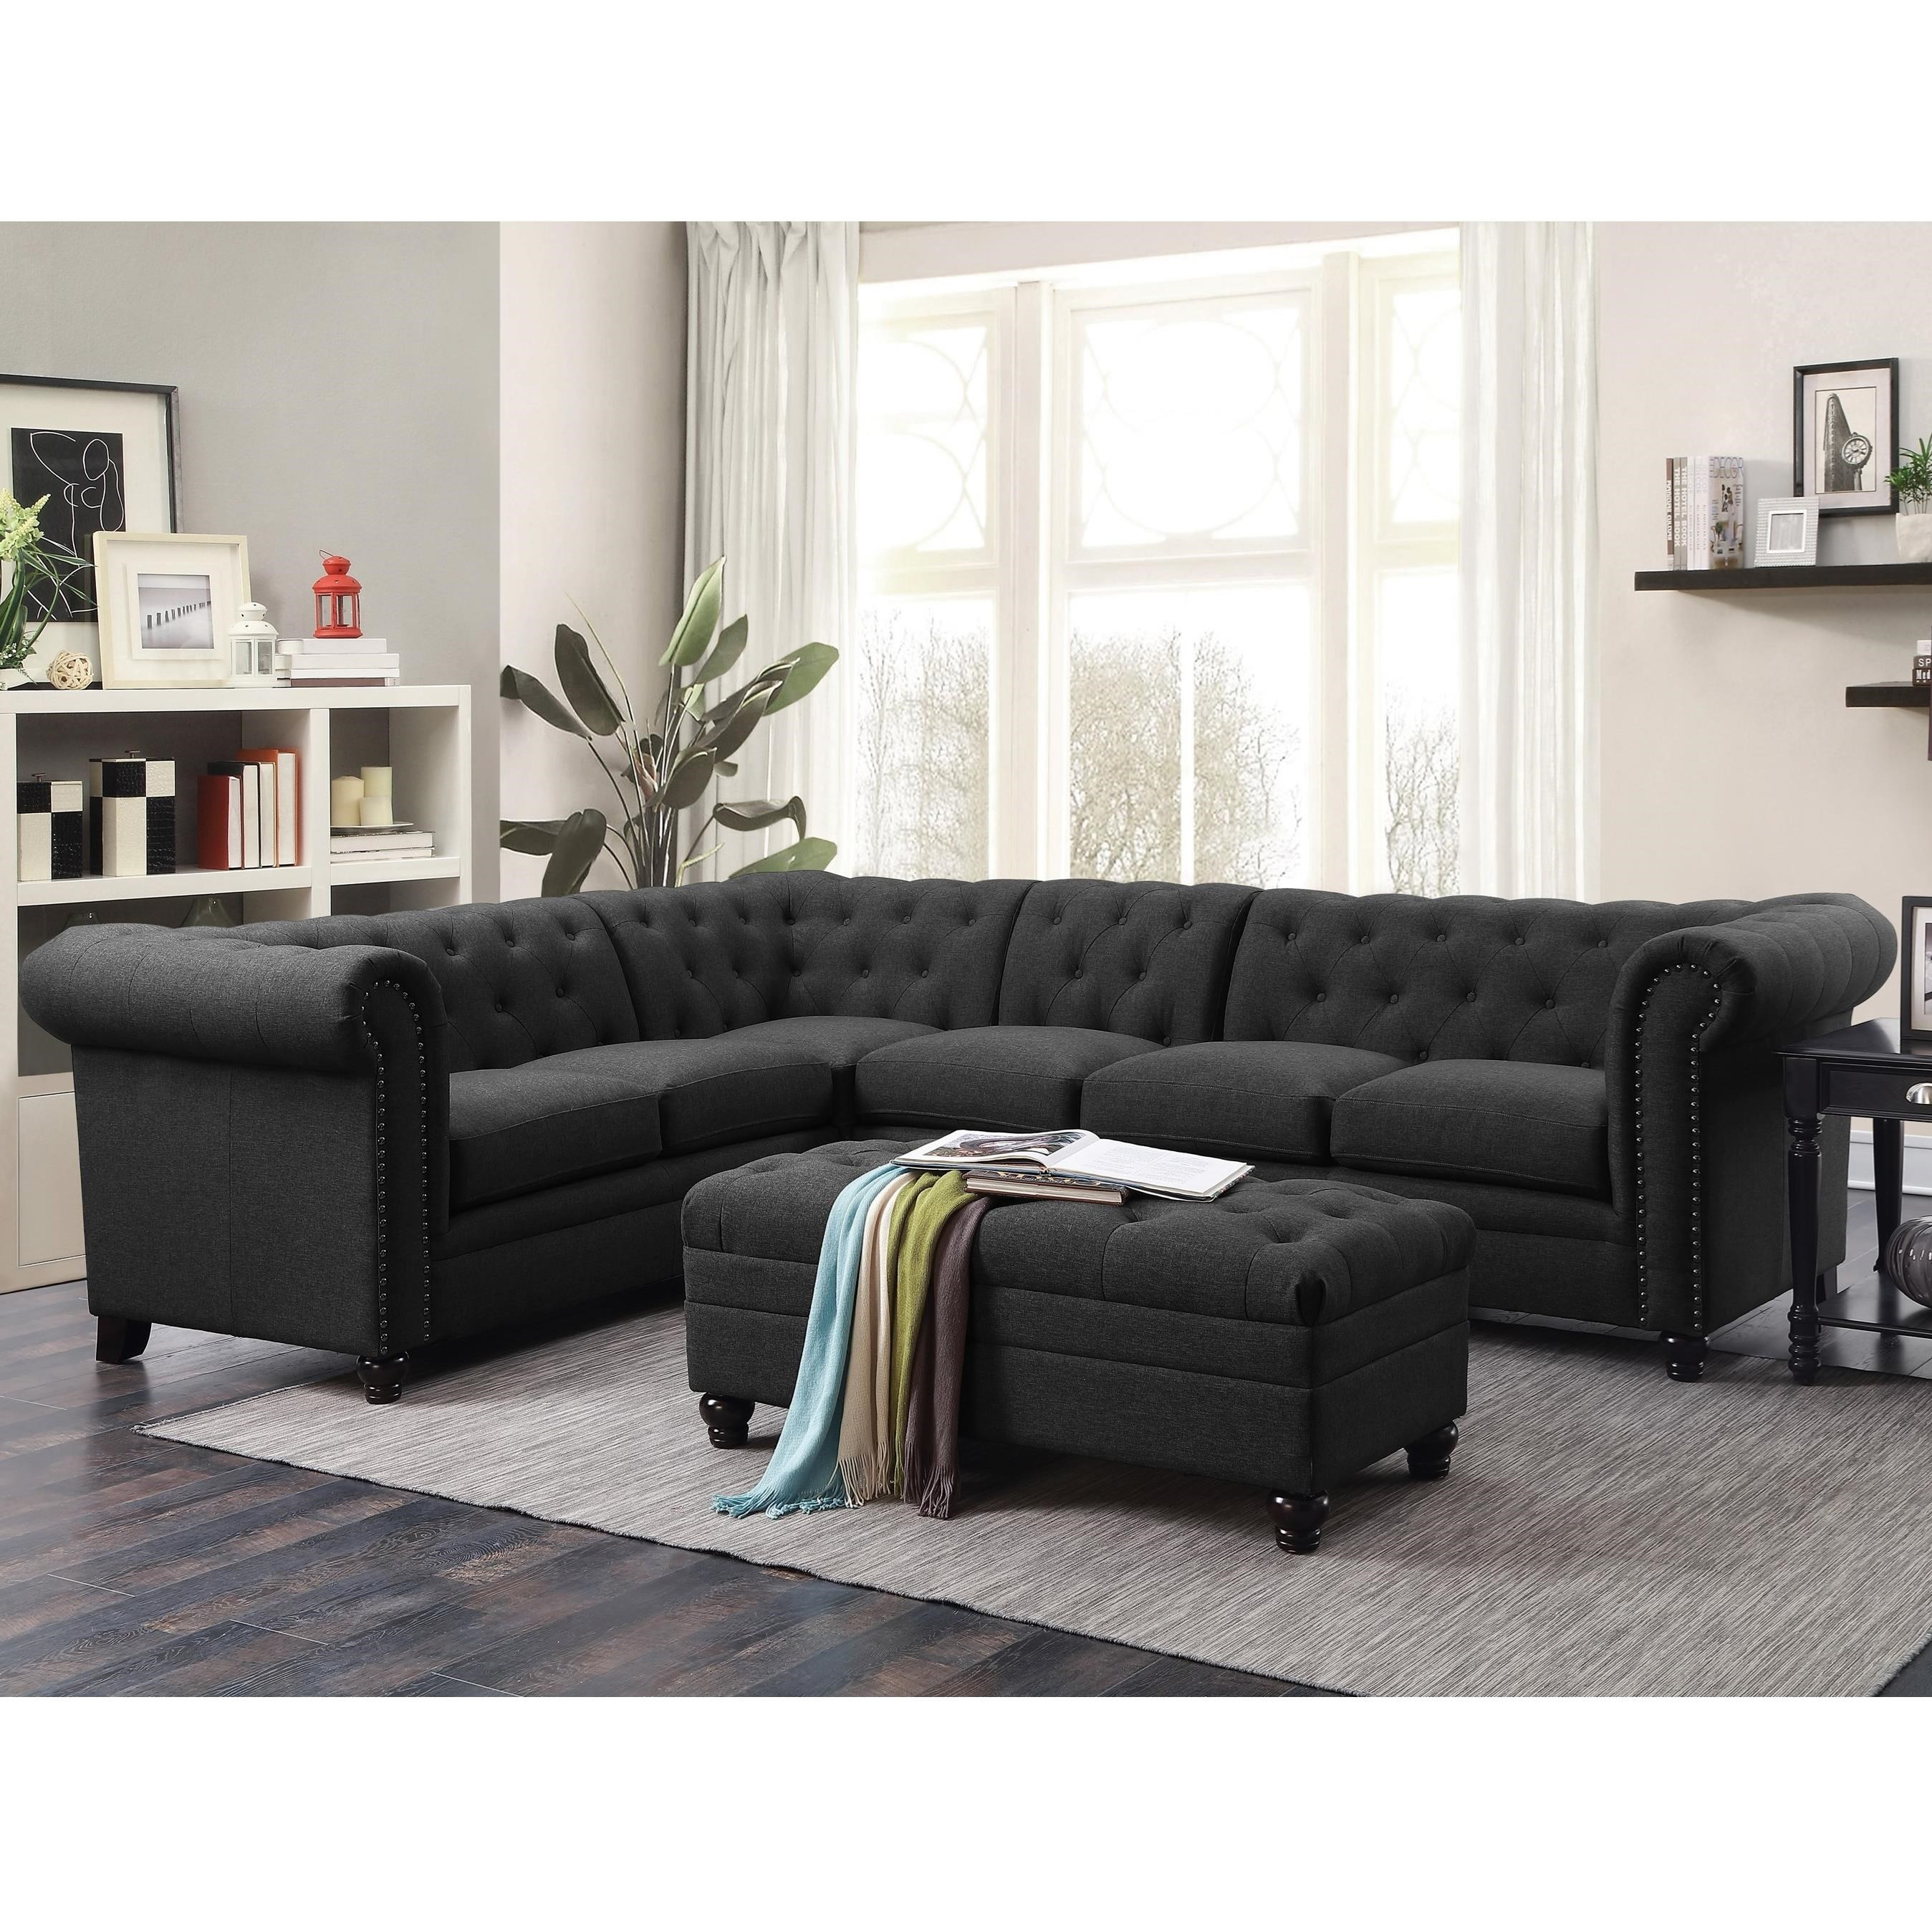 Tufted Sectional Sofa Finest Furniture Tufted Sectional Sofa